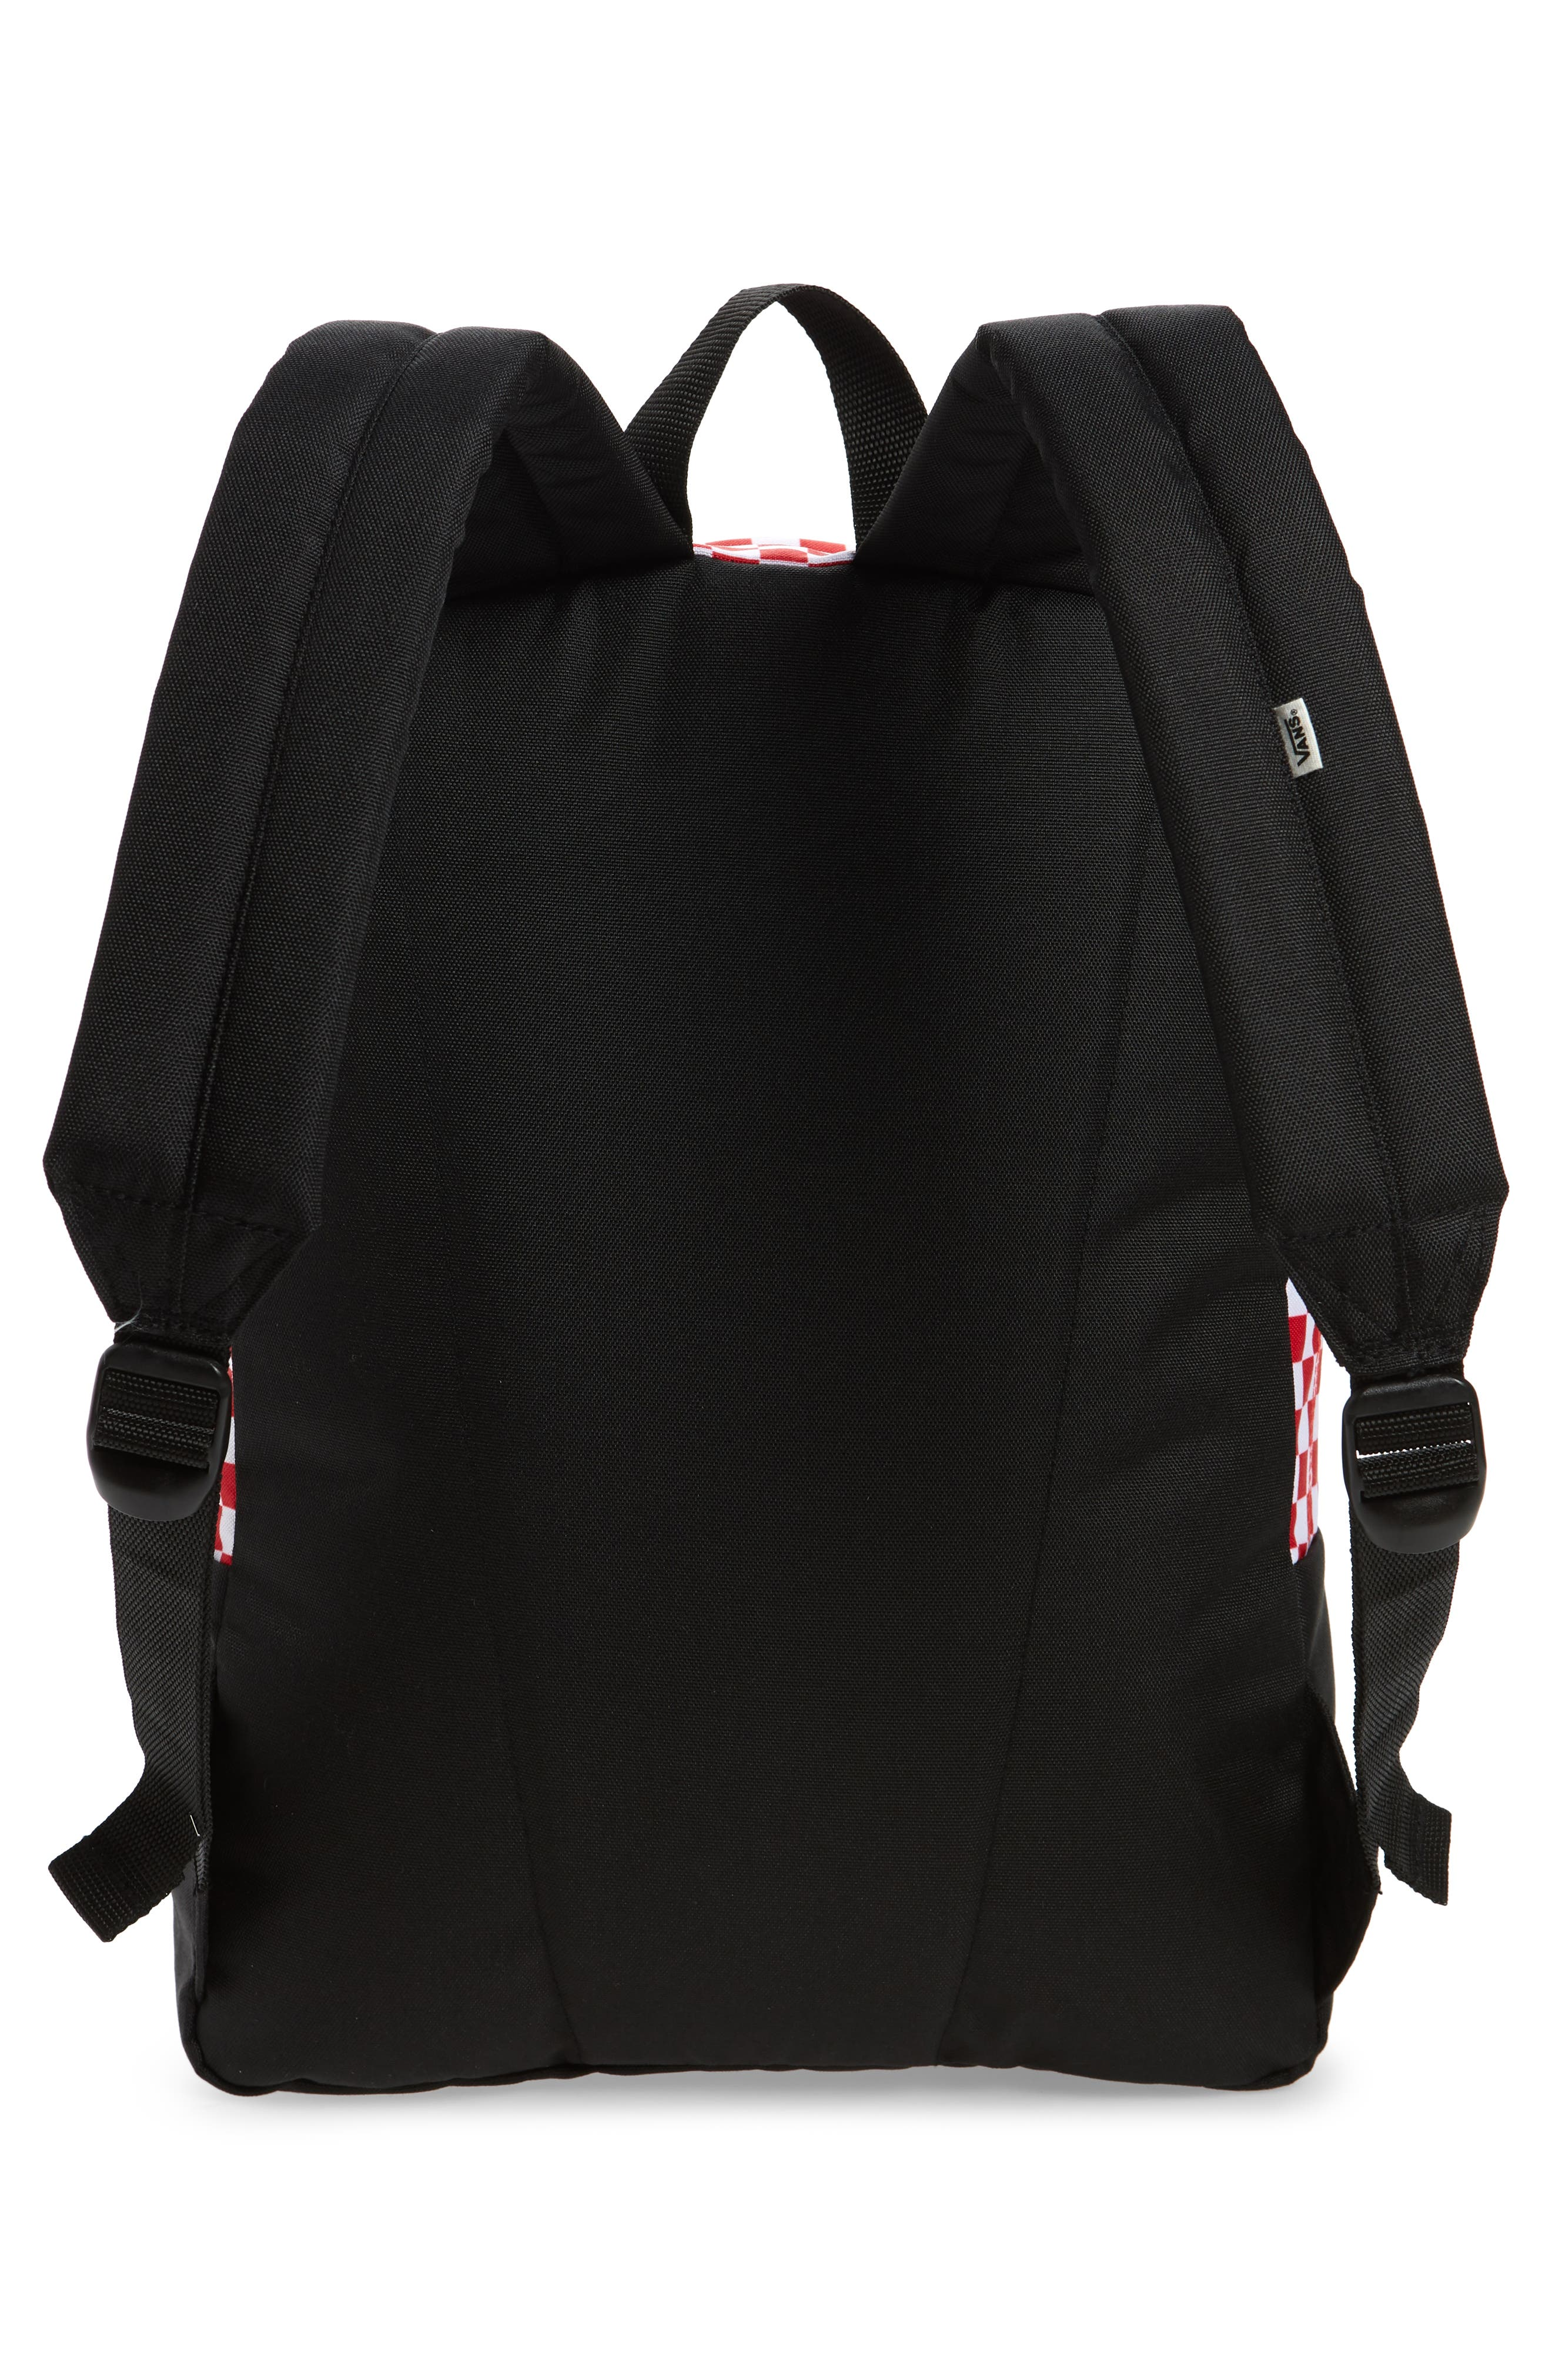 x Marvel<sup>®</sup> Spidey Realm Backpack,                             Alternate thumbnail 2, color,                             001